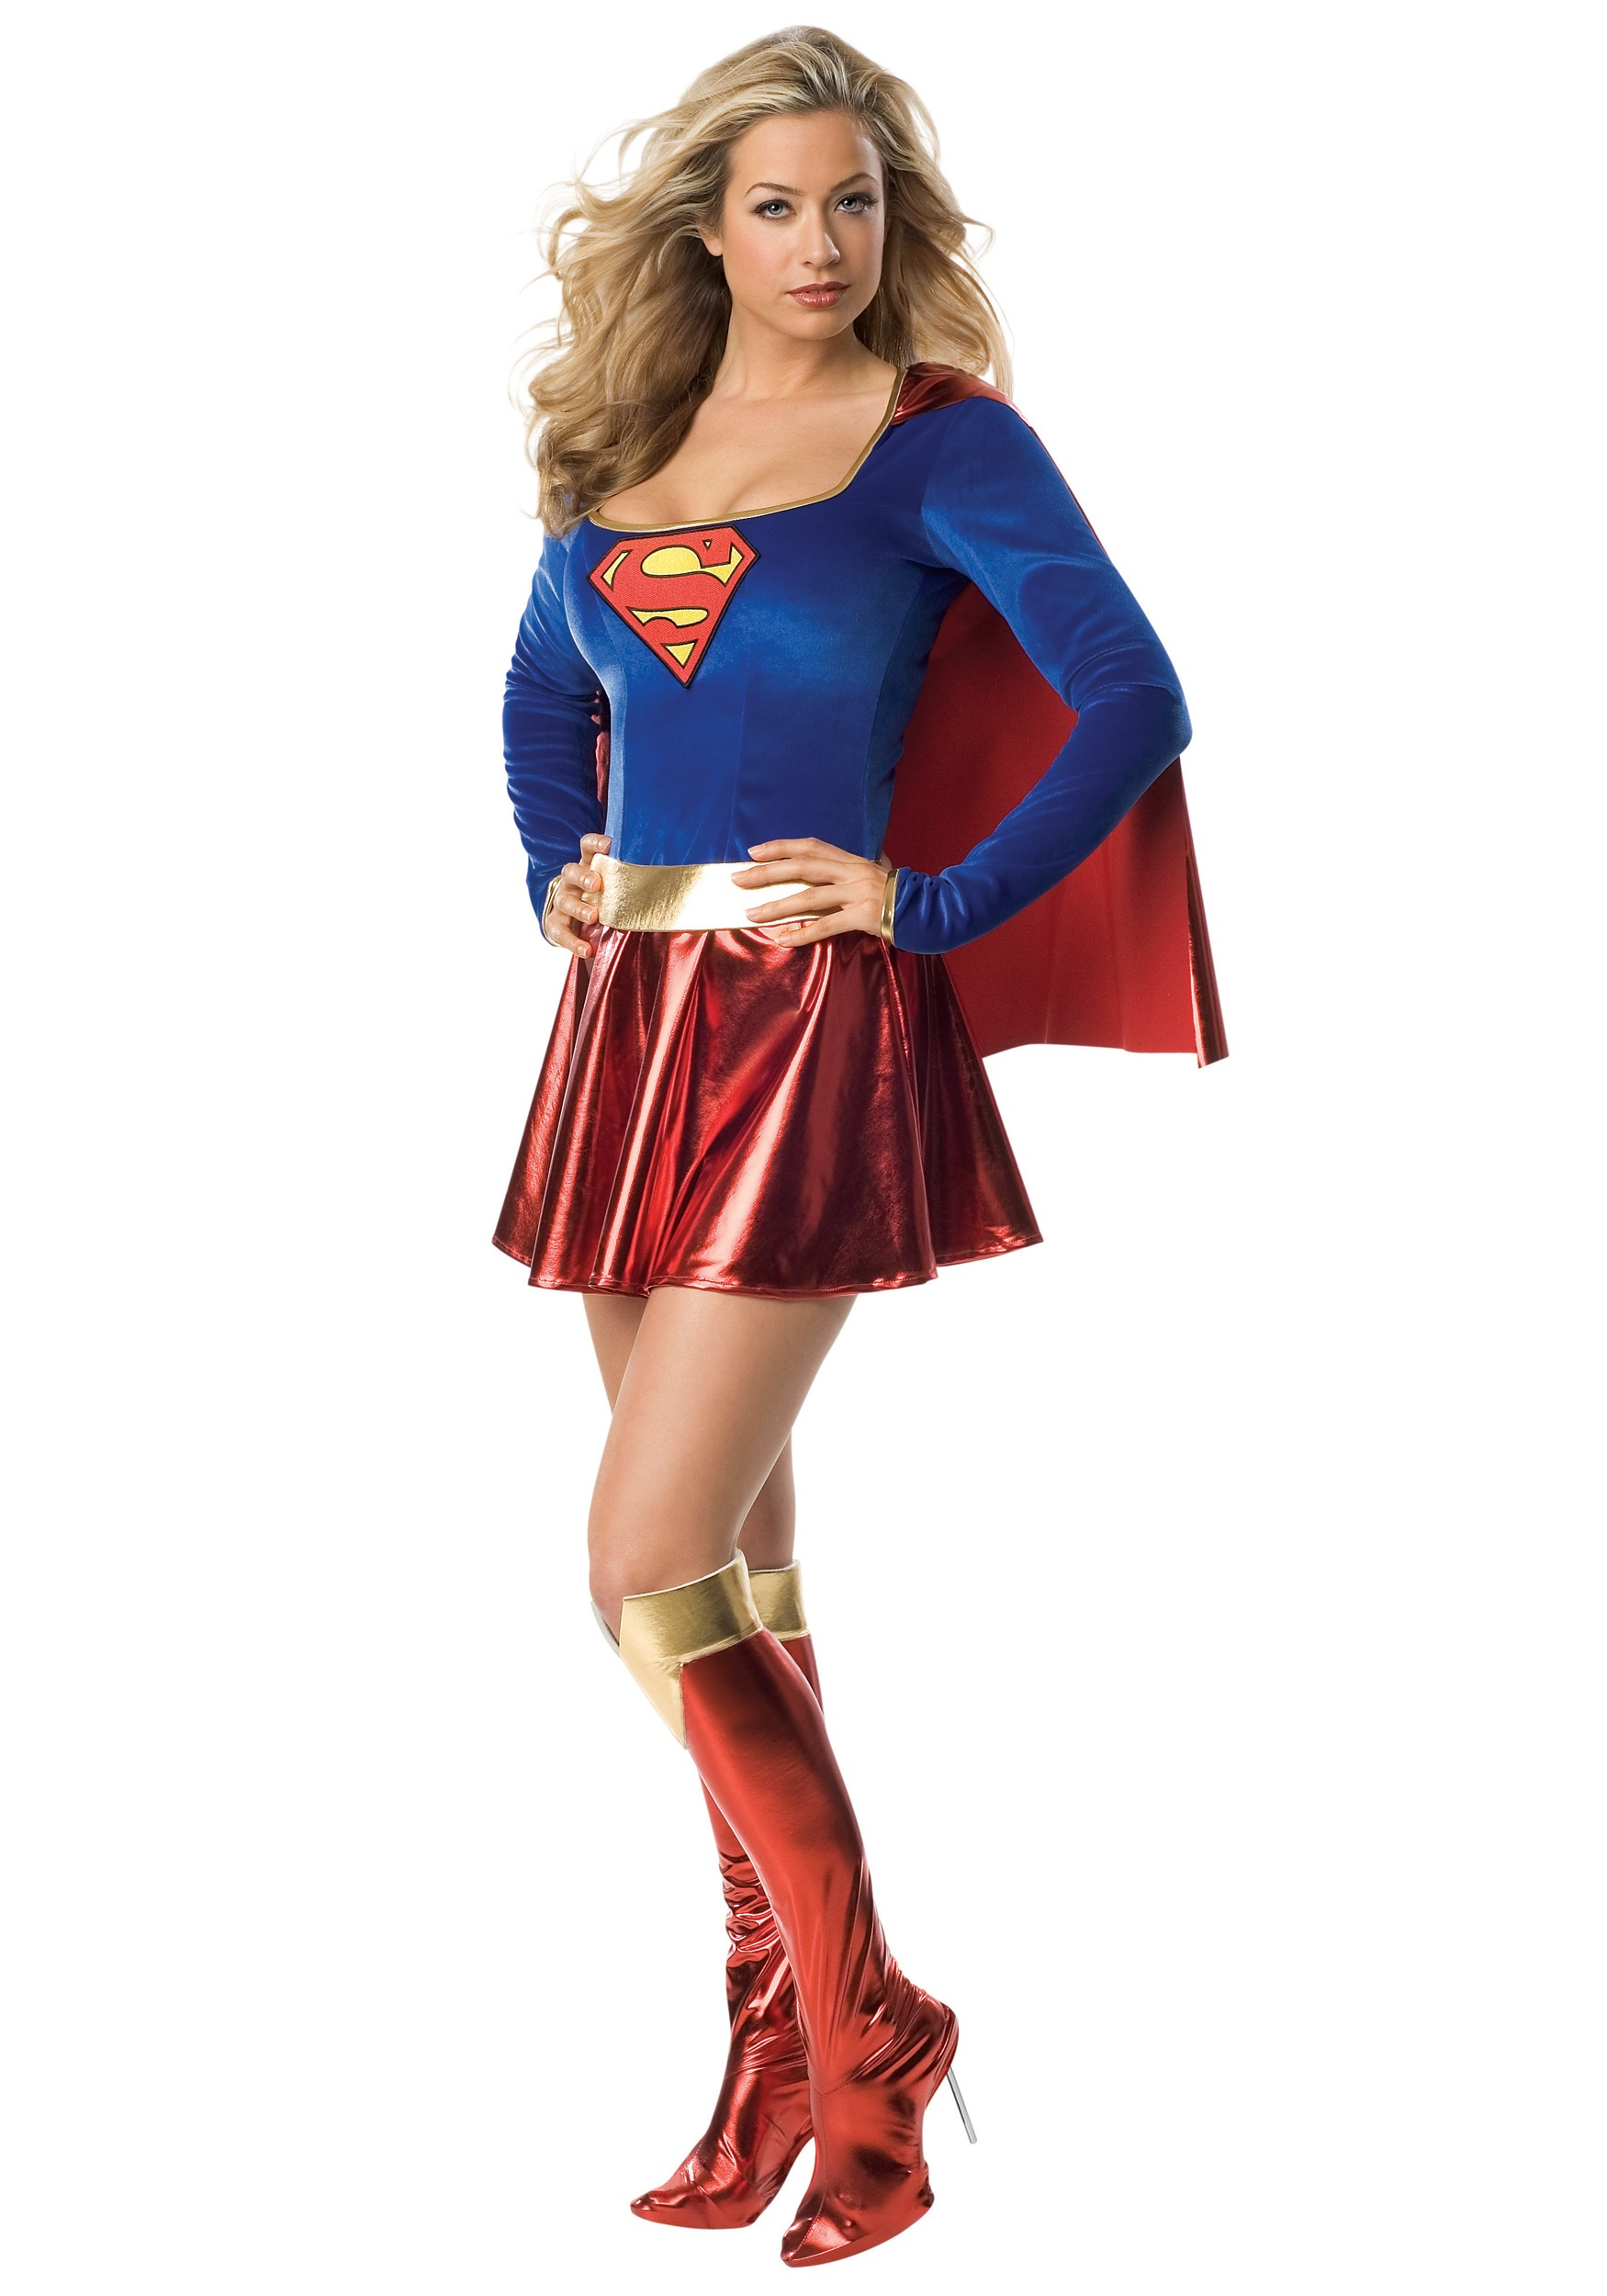 Image result for superman costume for women